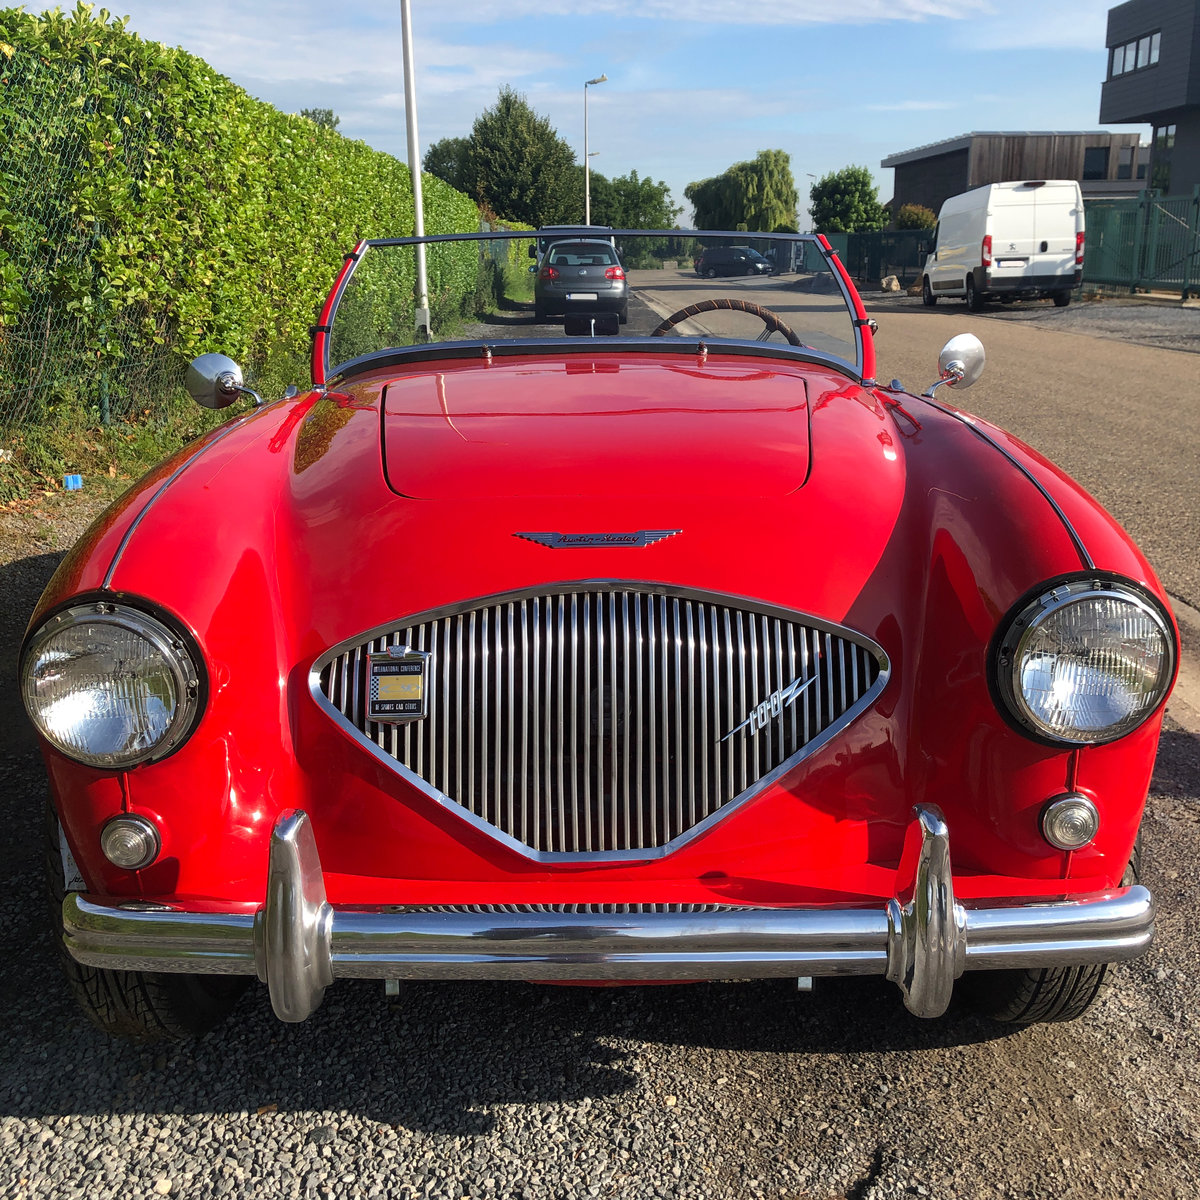 1955 Austin Healey 100/4 BN2 LHD For Sale (picture 4 of 6)